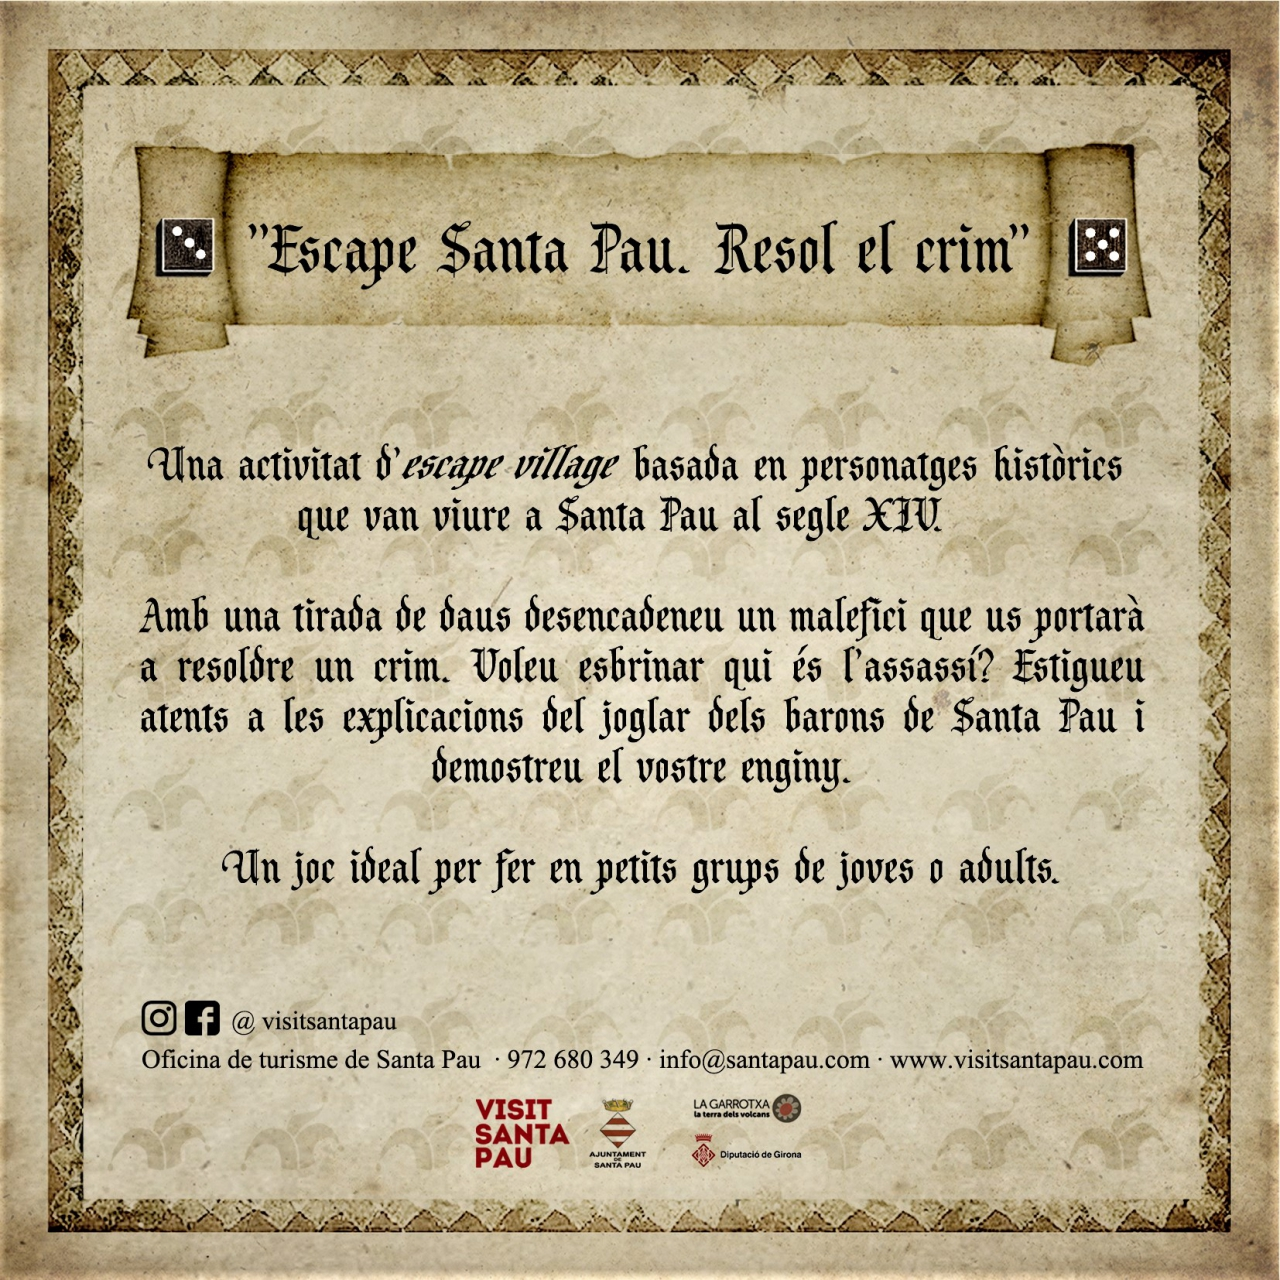 Escape Santa Pau